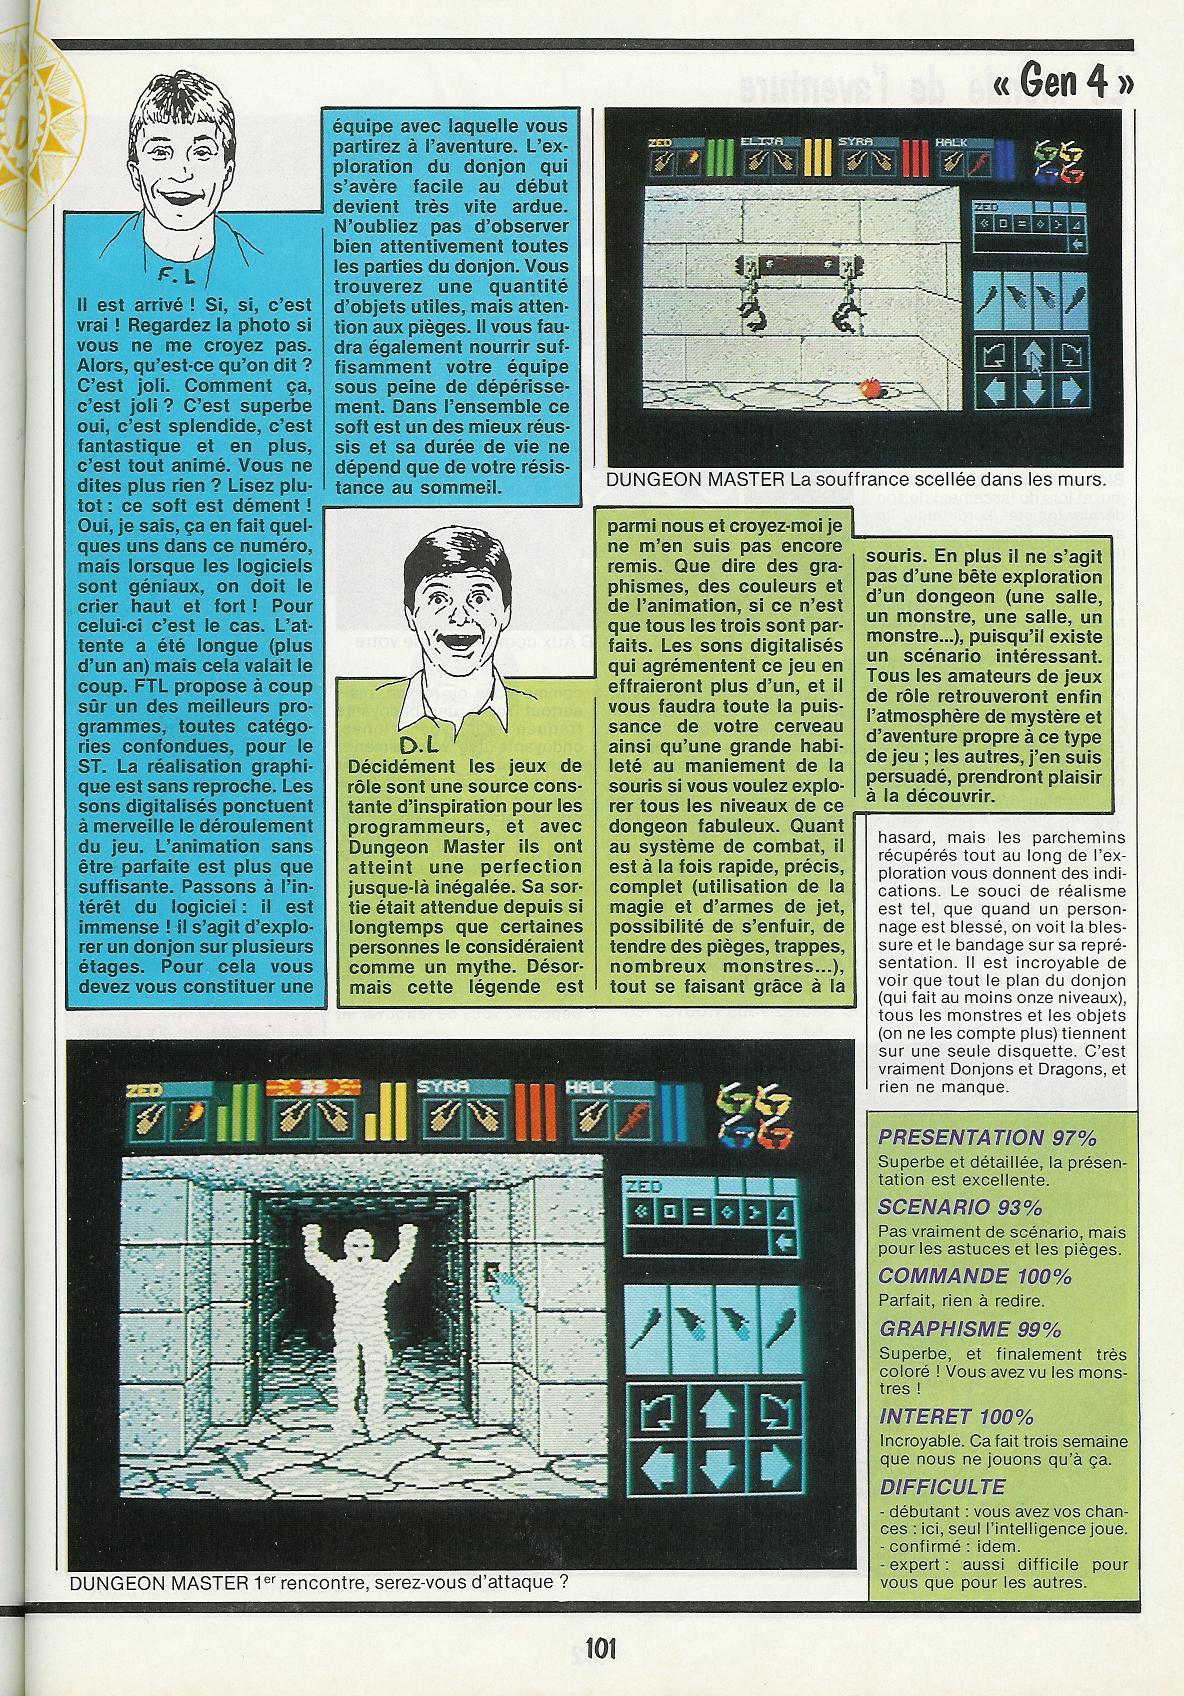 Dungeon Master for Atari ST Review published in French magazine 'Gen4', Issue #3, March 1988, Page 101